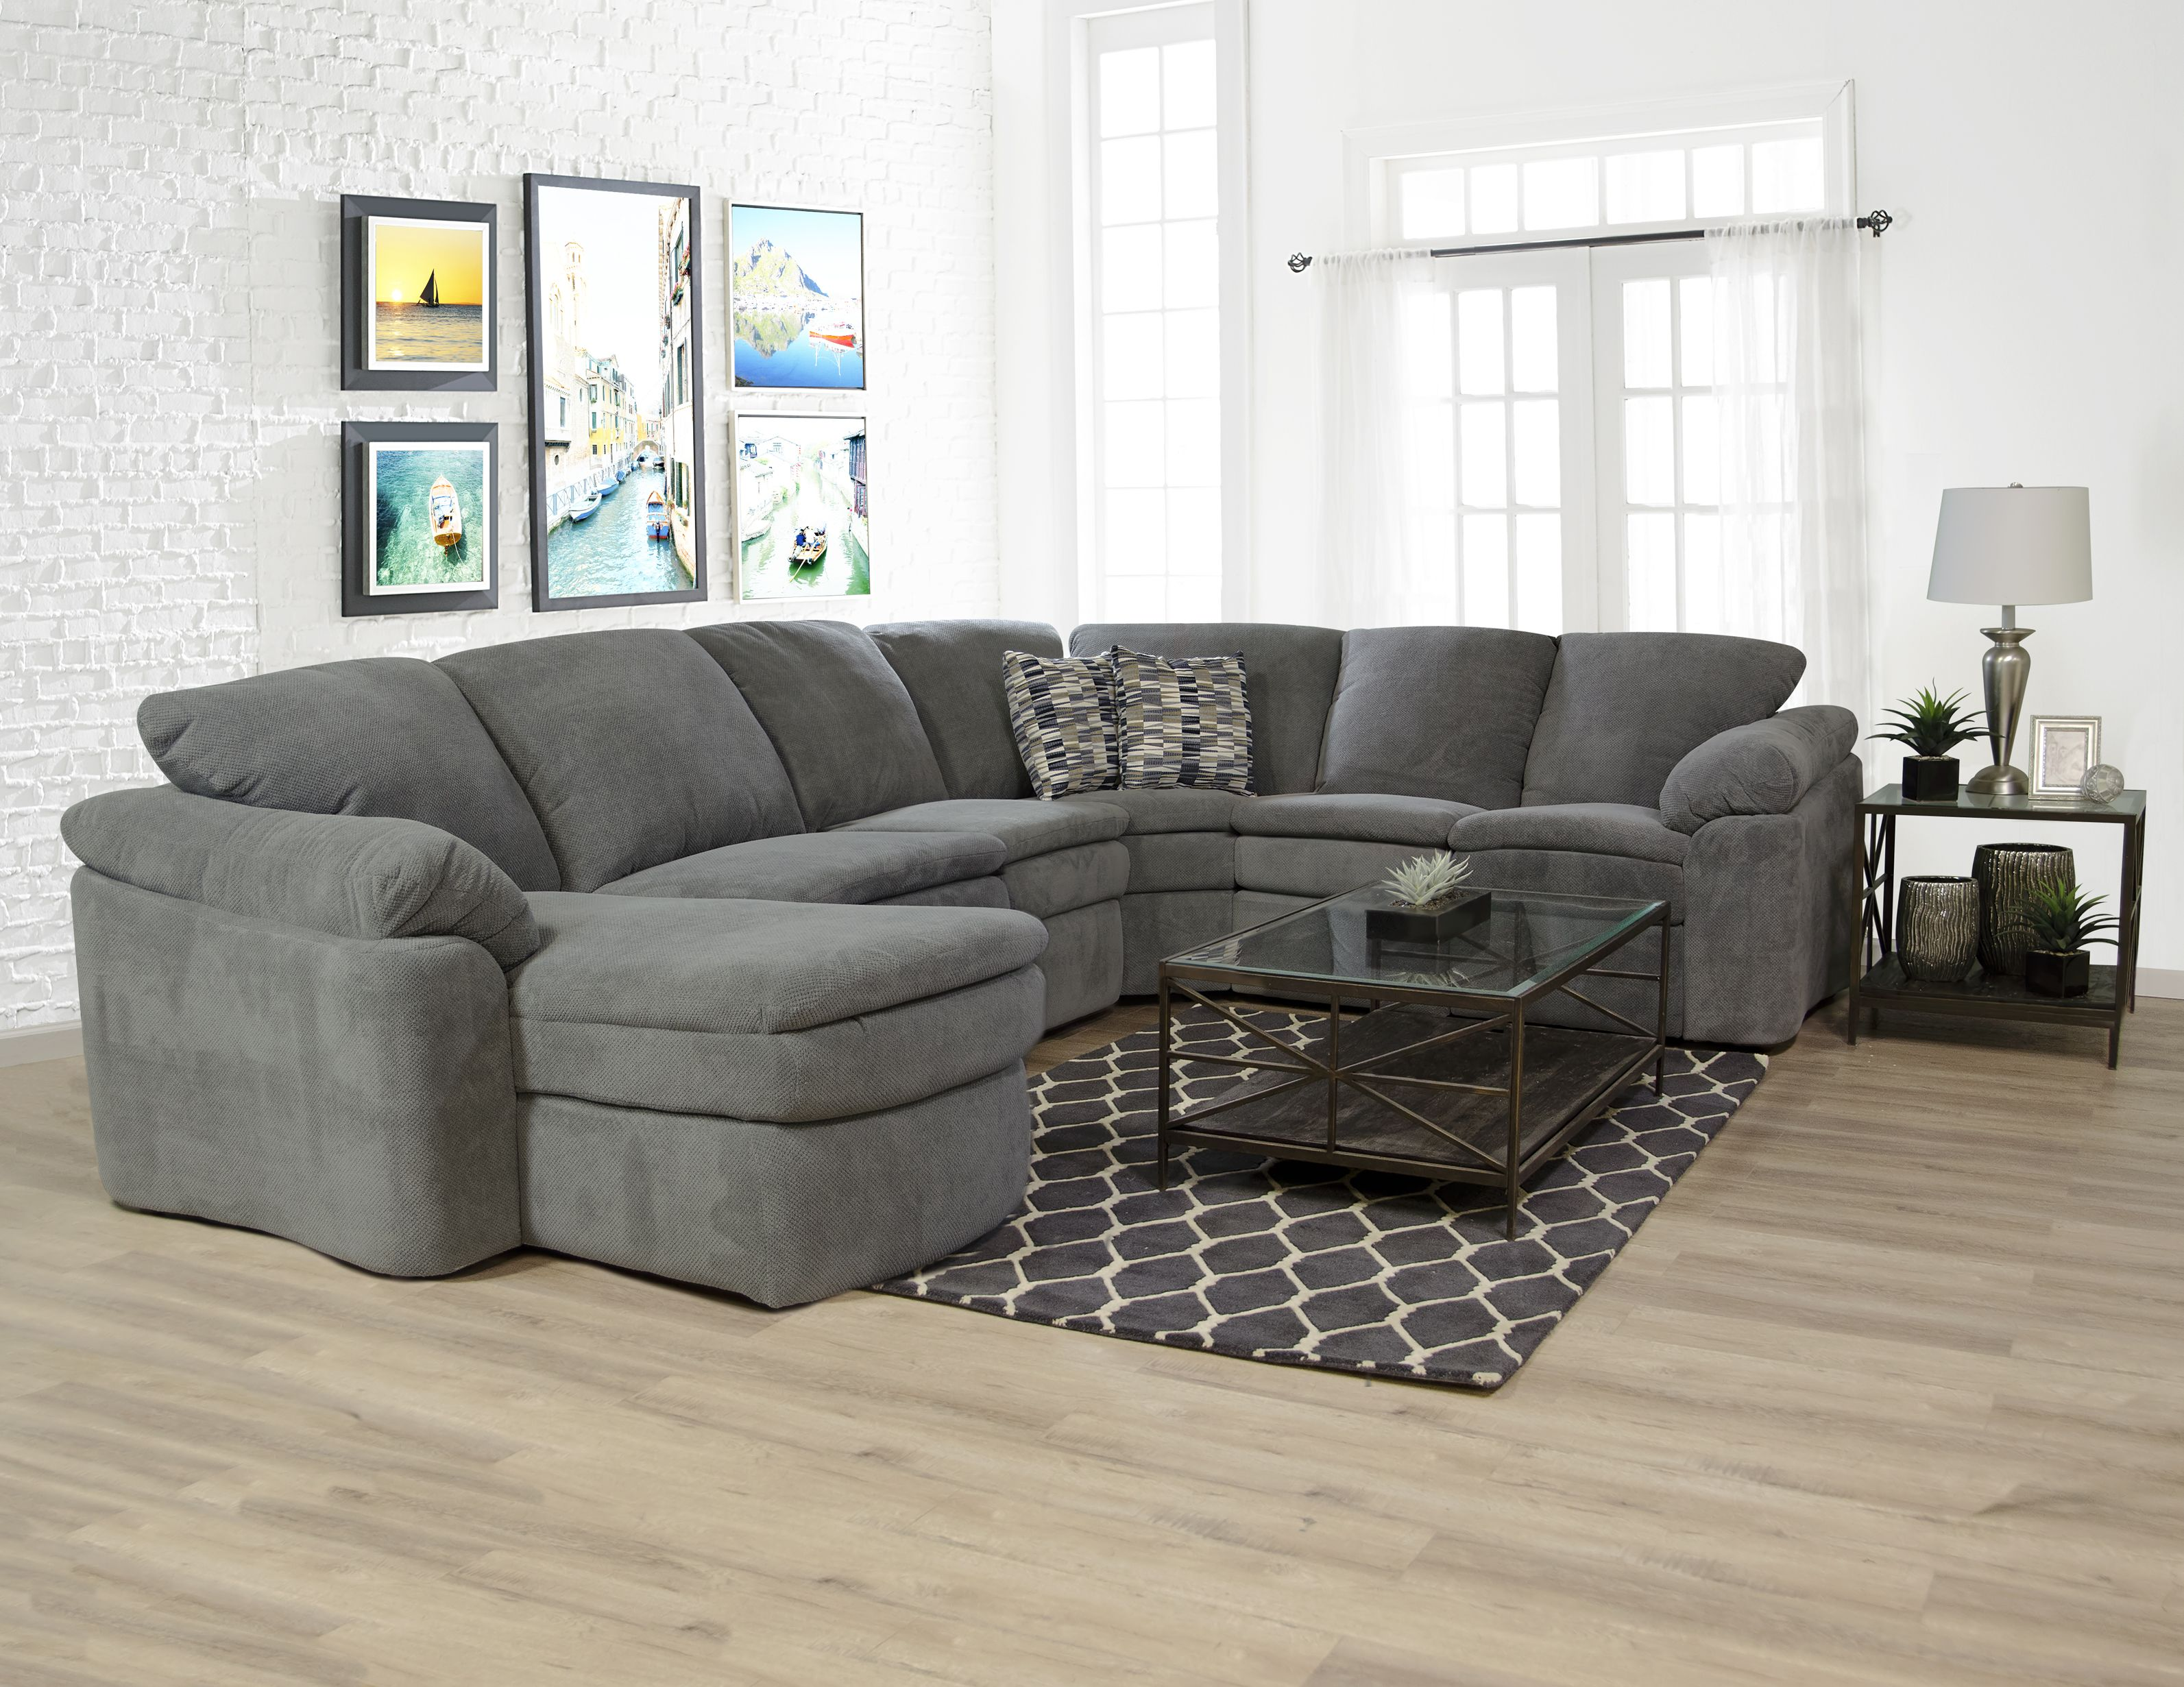 england sofa sleeper reviews grey leather chesterfield dfs living room monroe queen